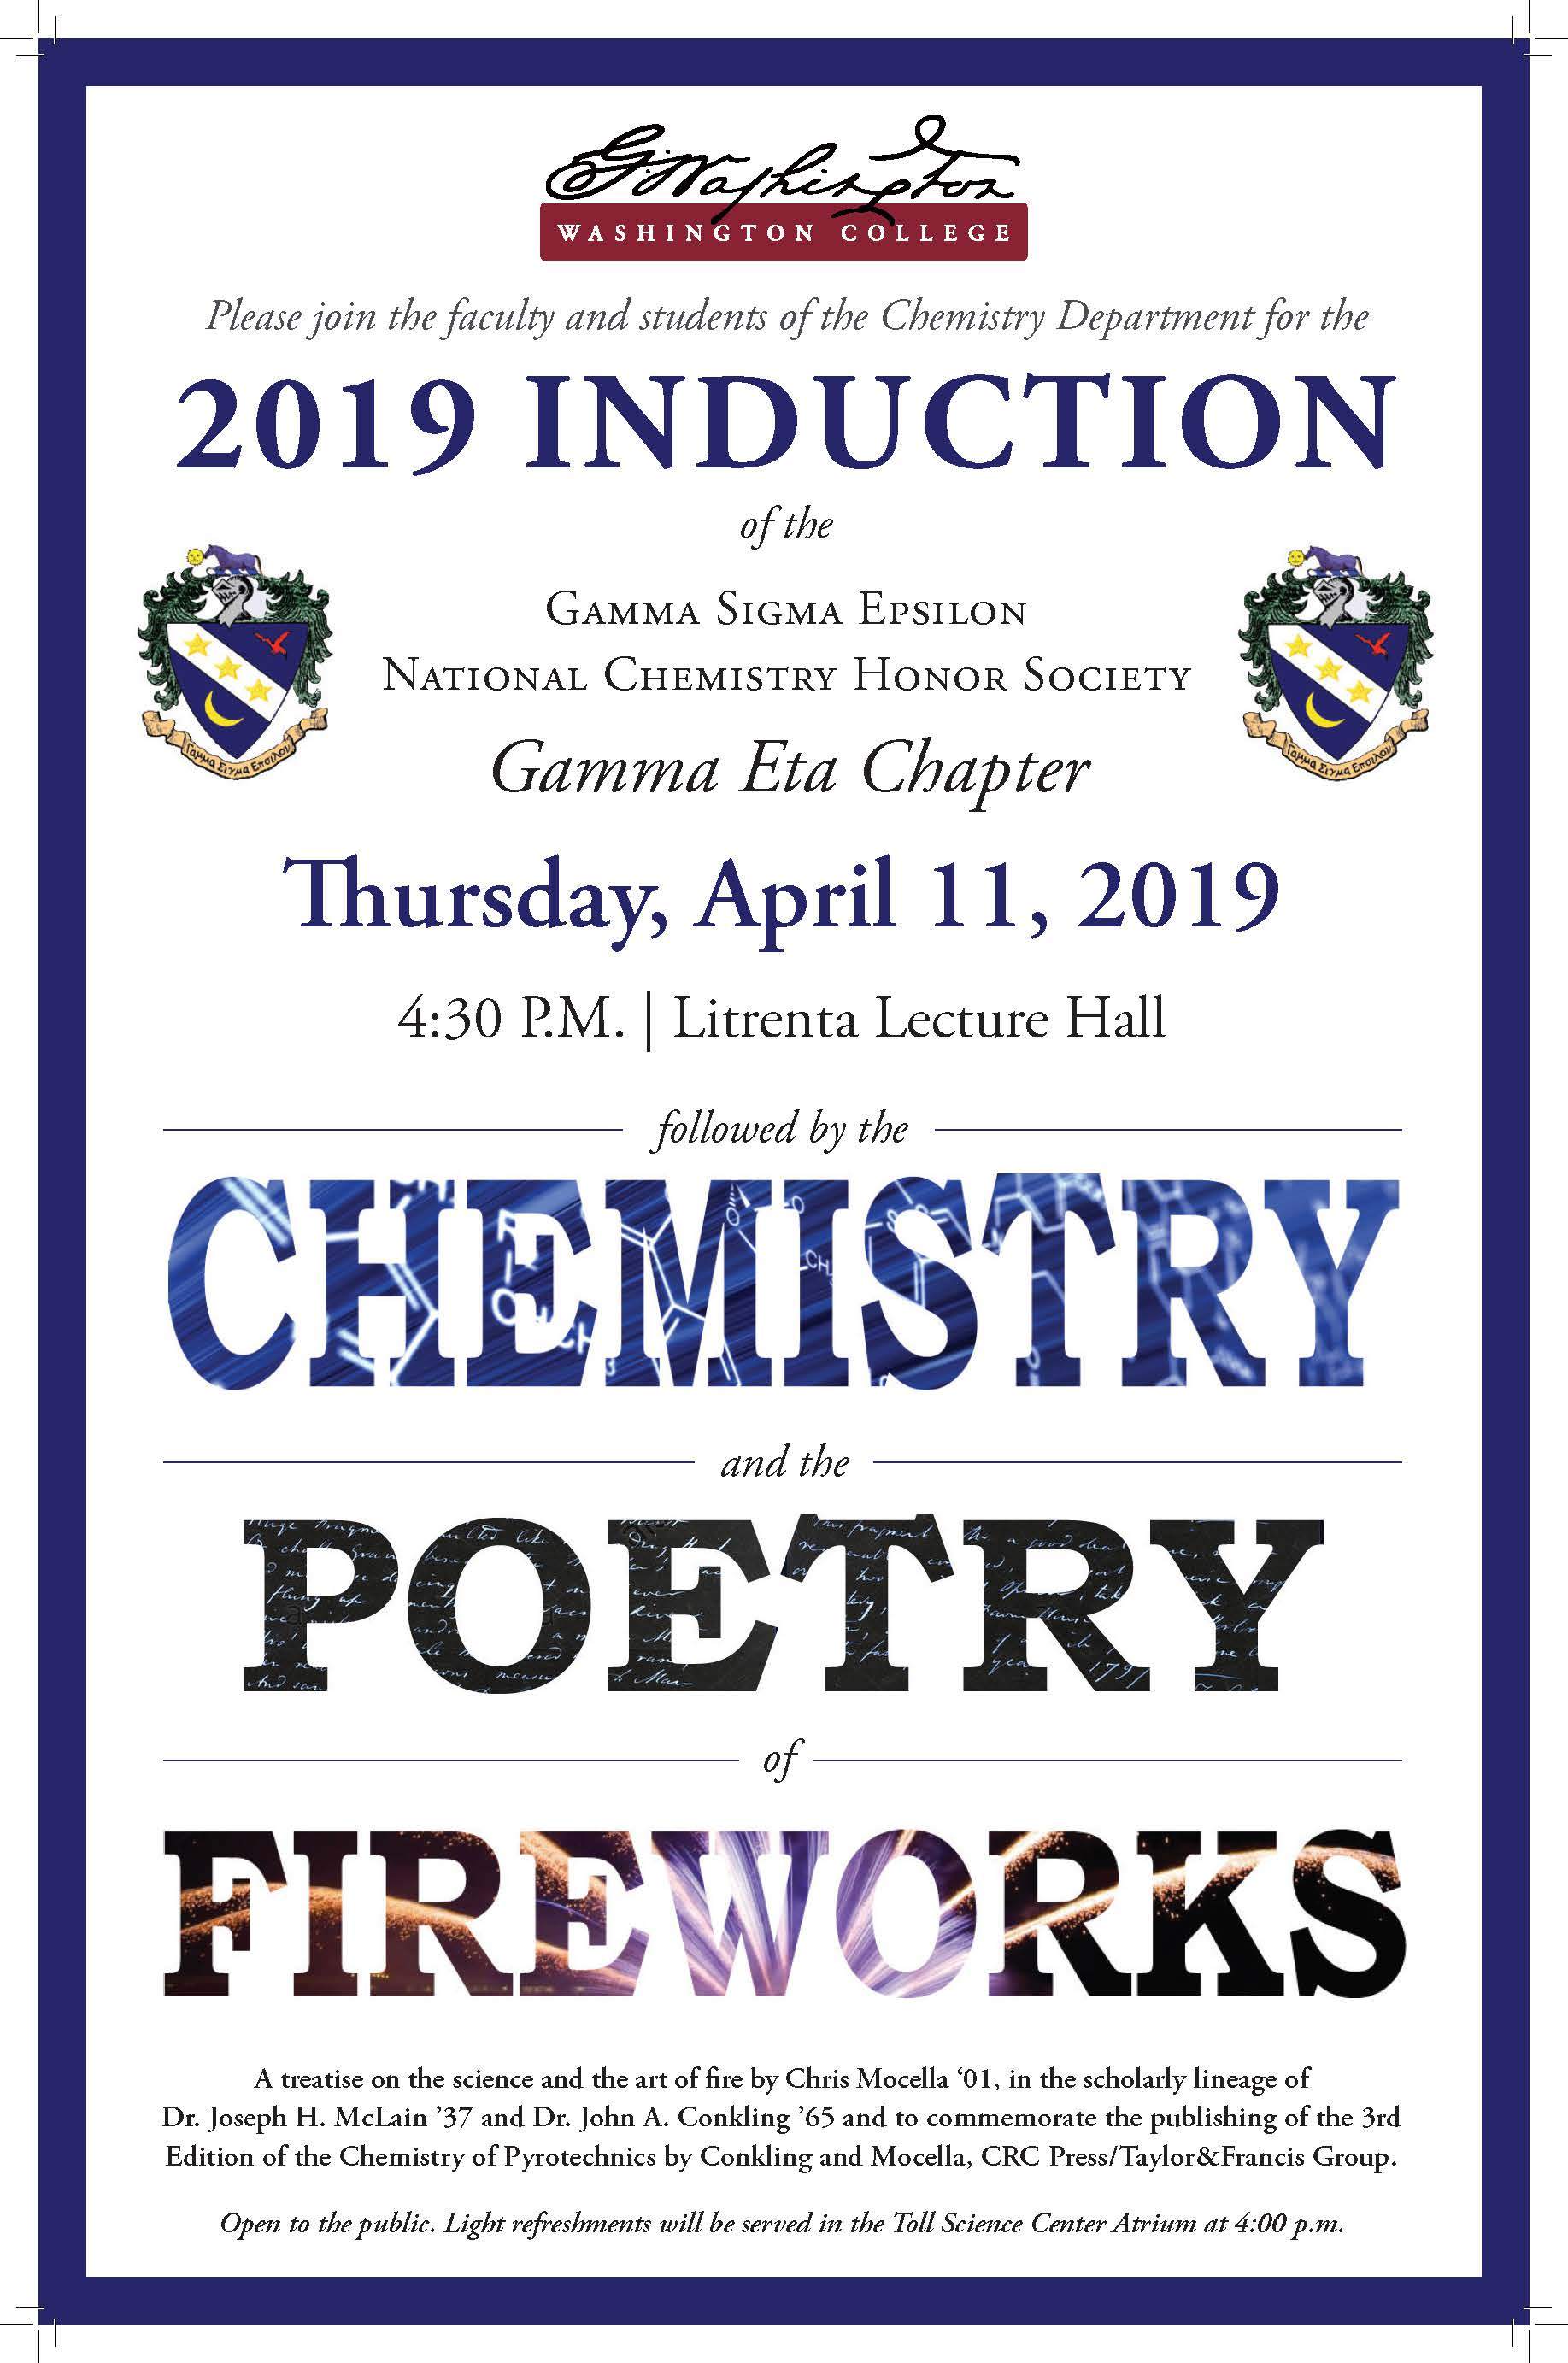 2019 Induction of the Gamma Sigma Epsilon National Chemistry Honor Society followed by the Chemistry and the Poetry of Fireworks